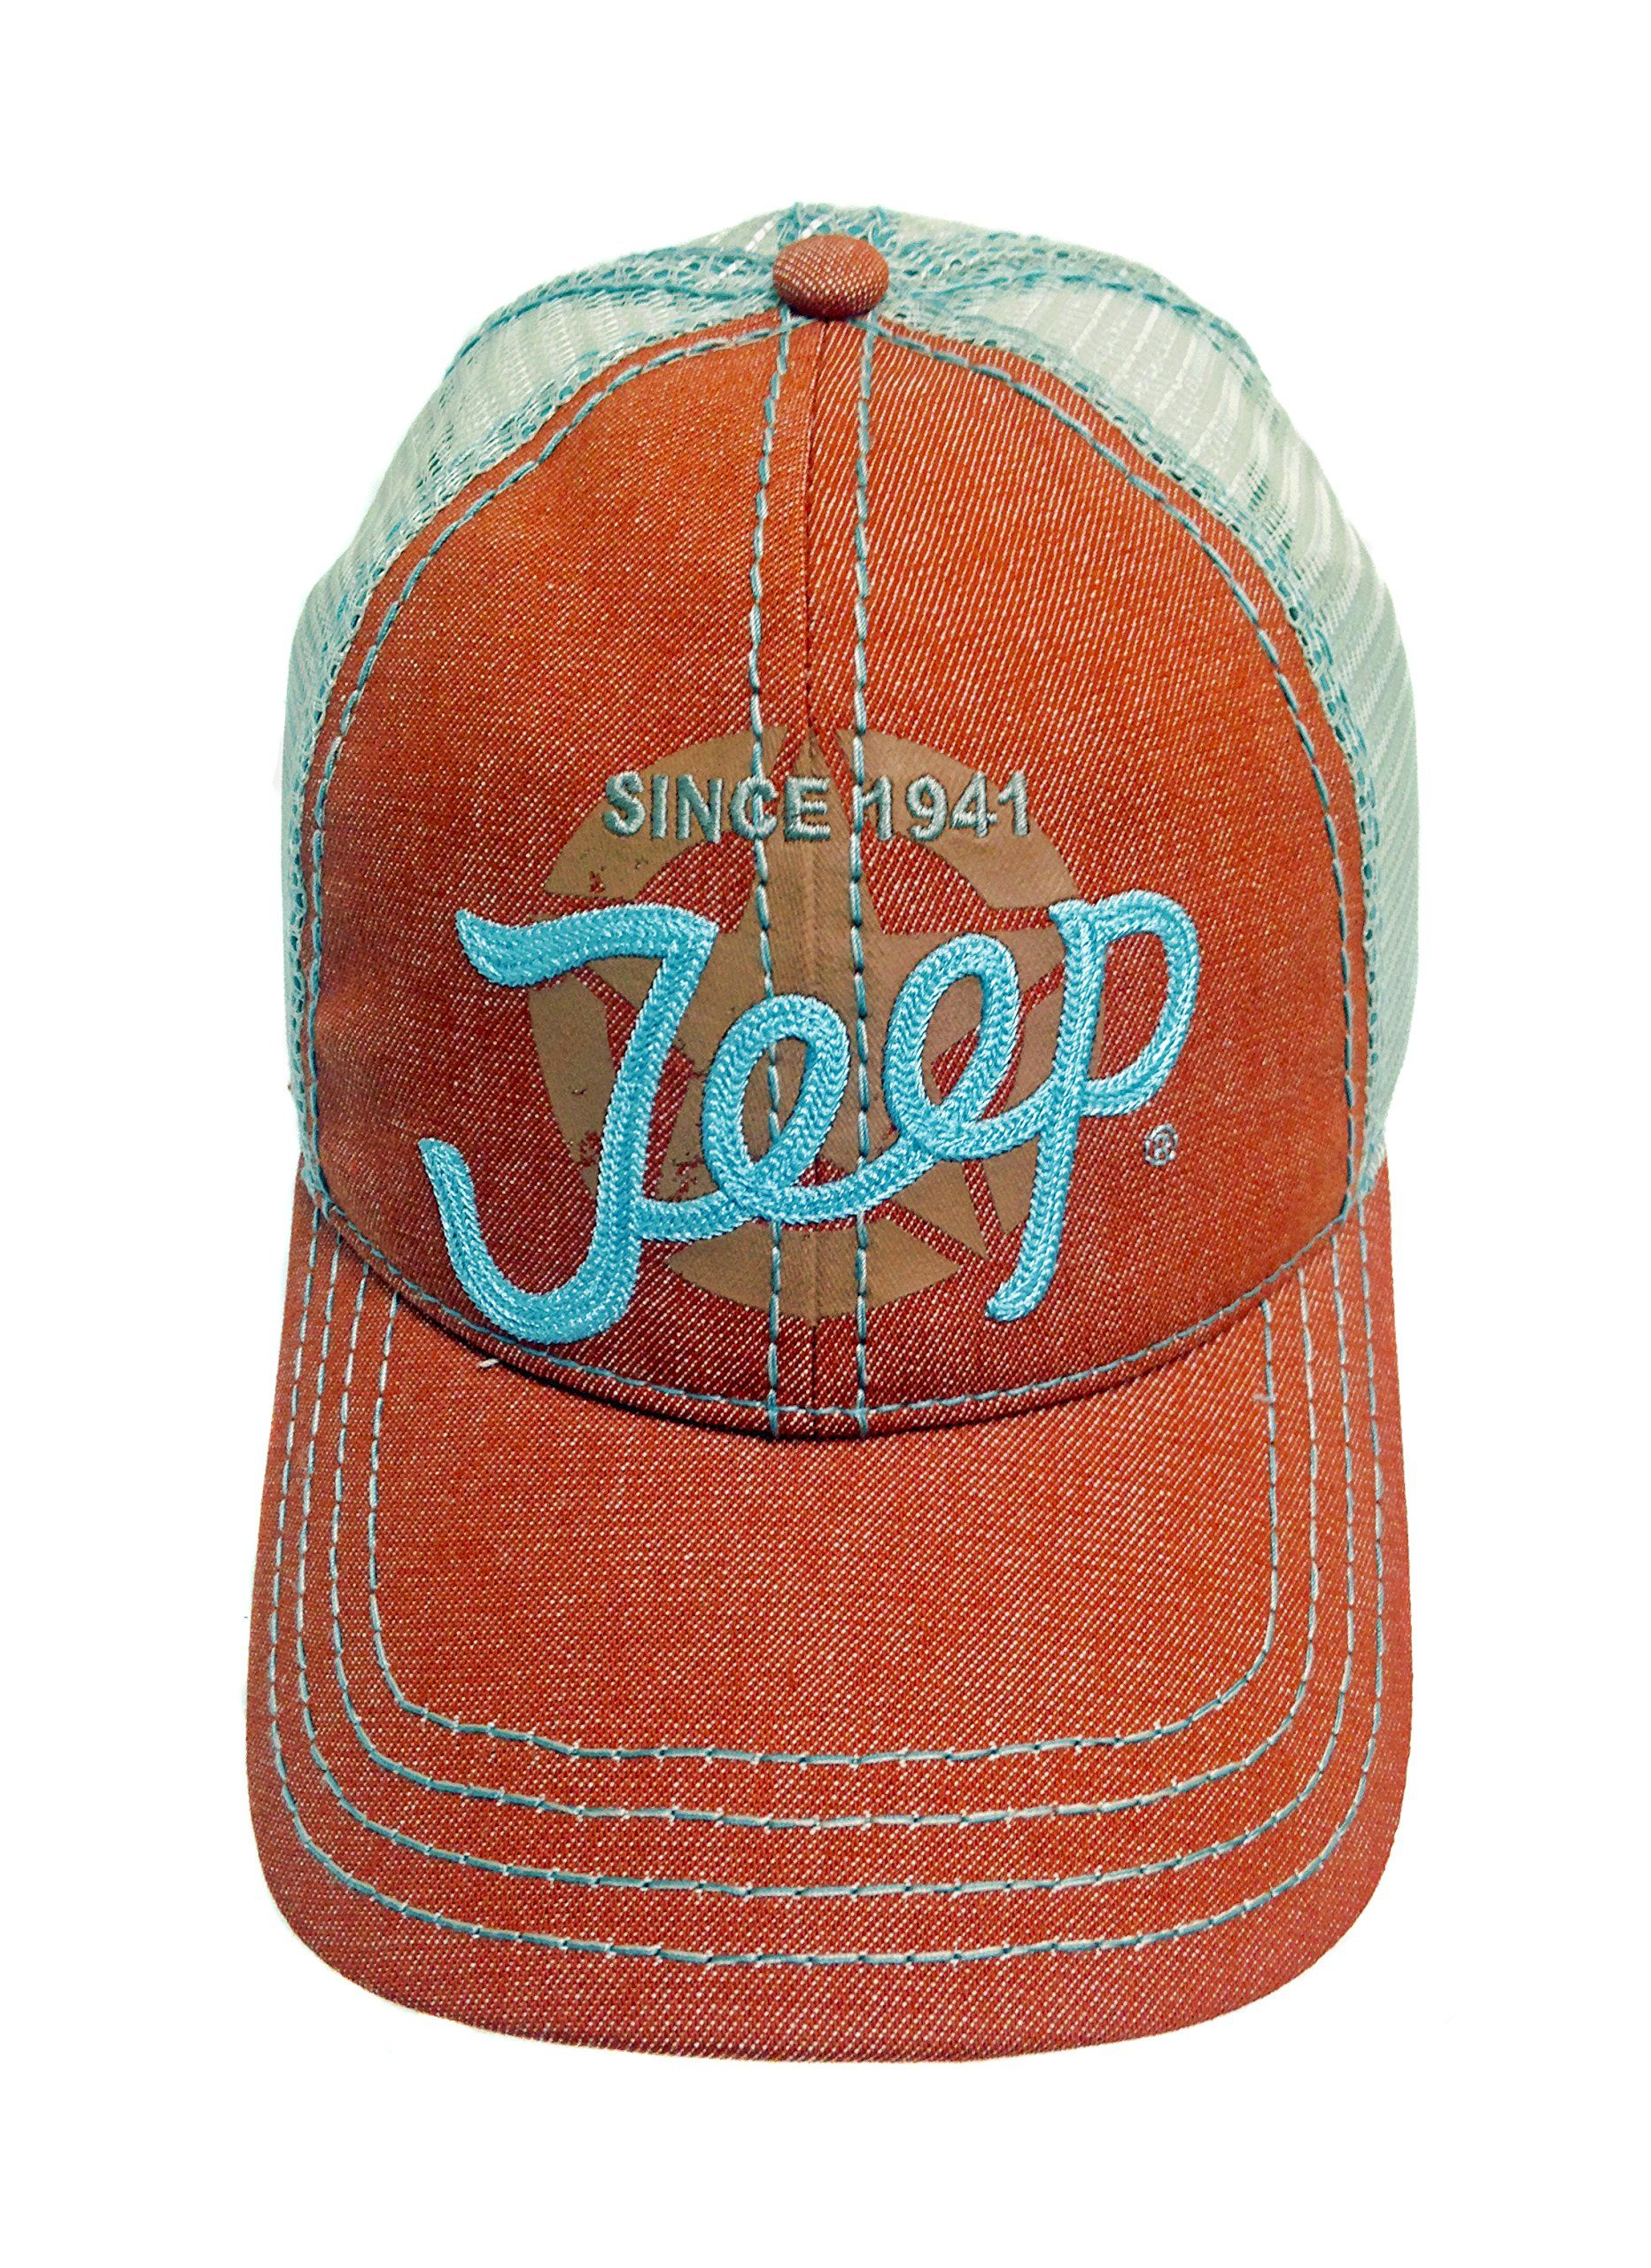 Jeep Script Denim and Mesh Hat  72ddc78fef23